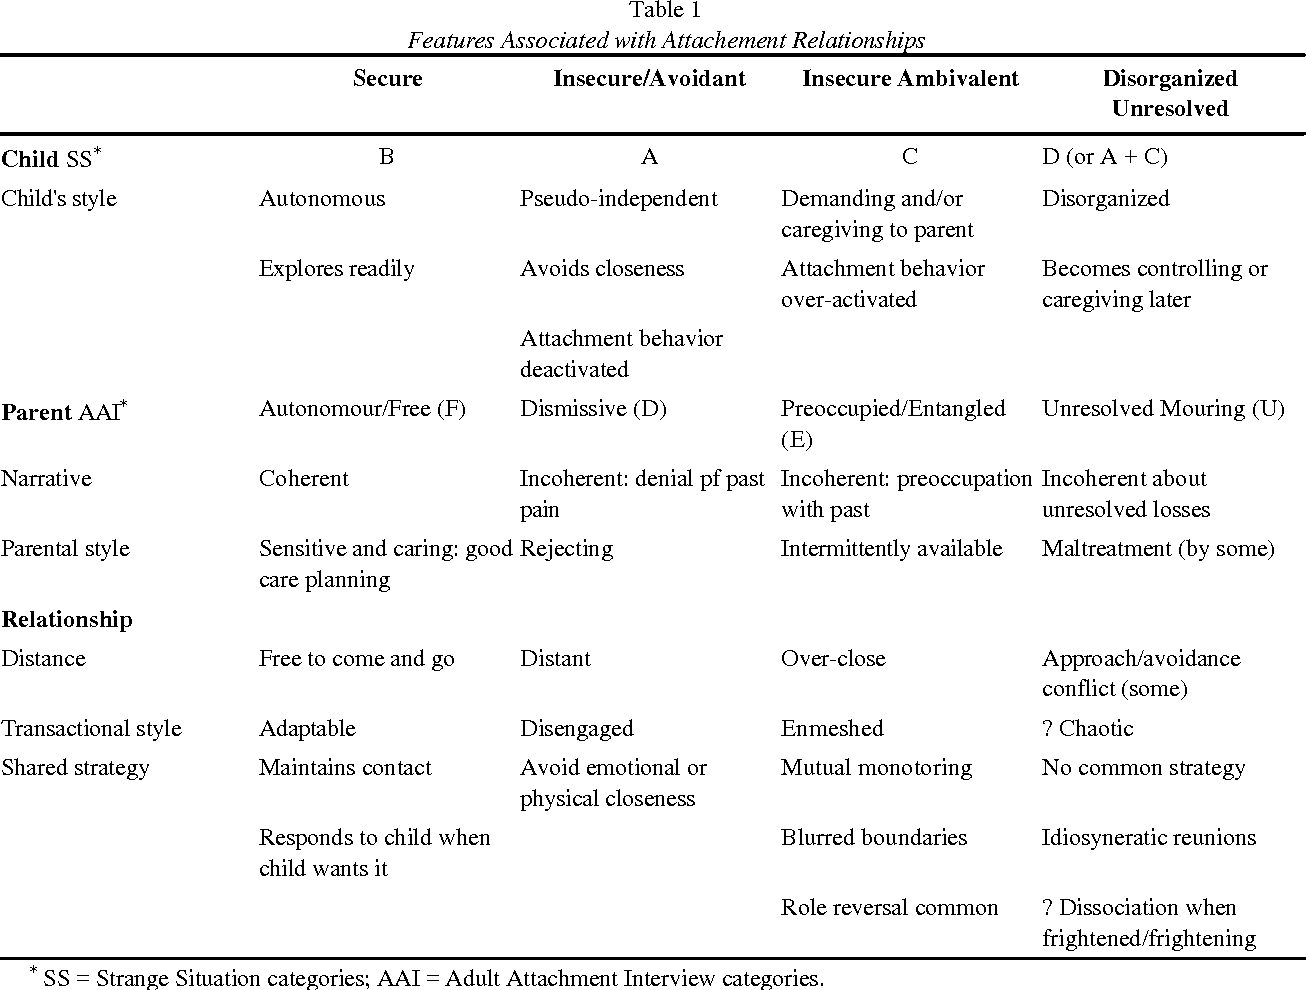 Table 1 From Creating A Secure Family Base Some